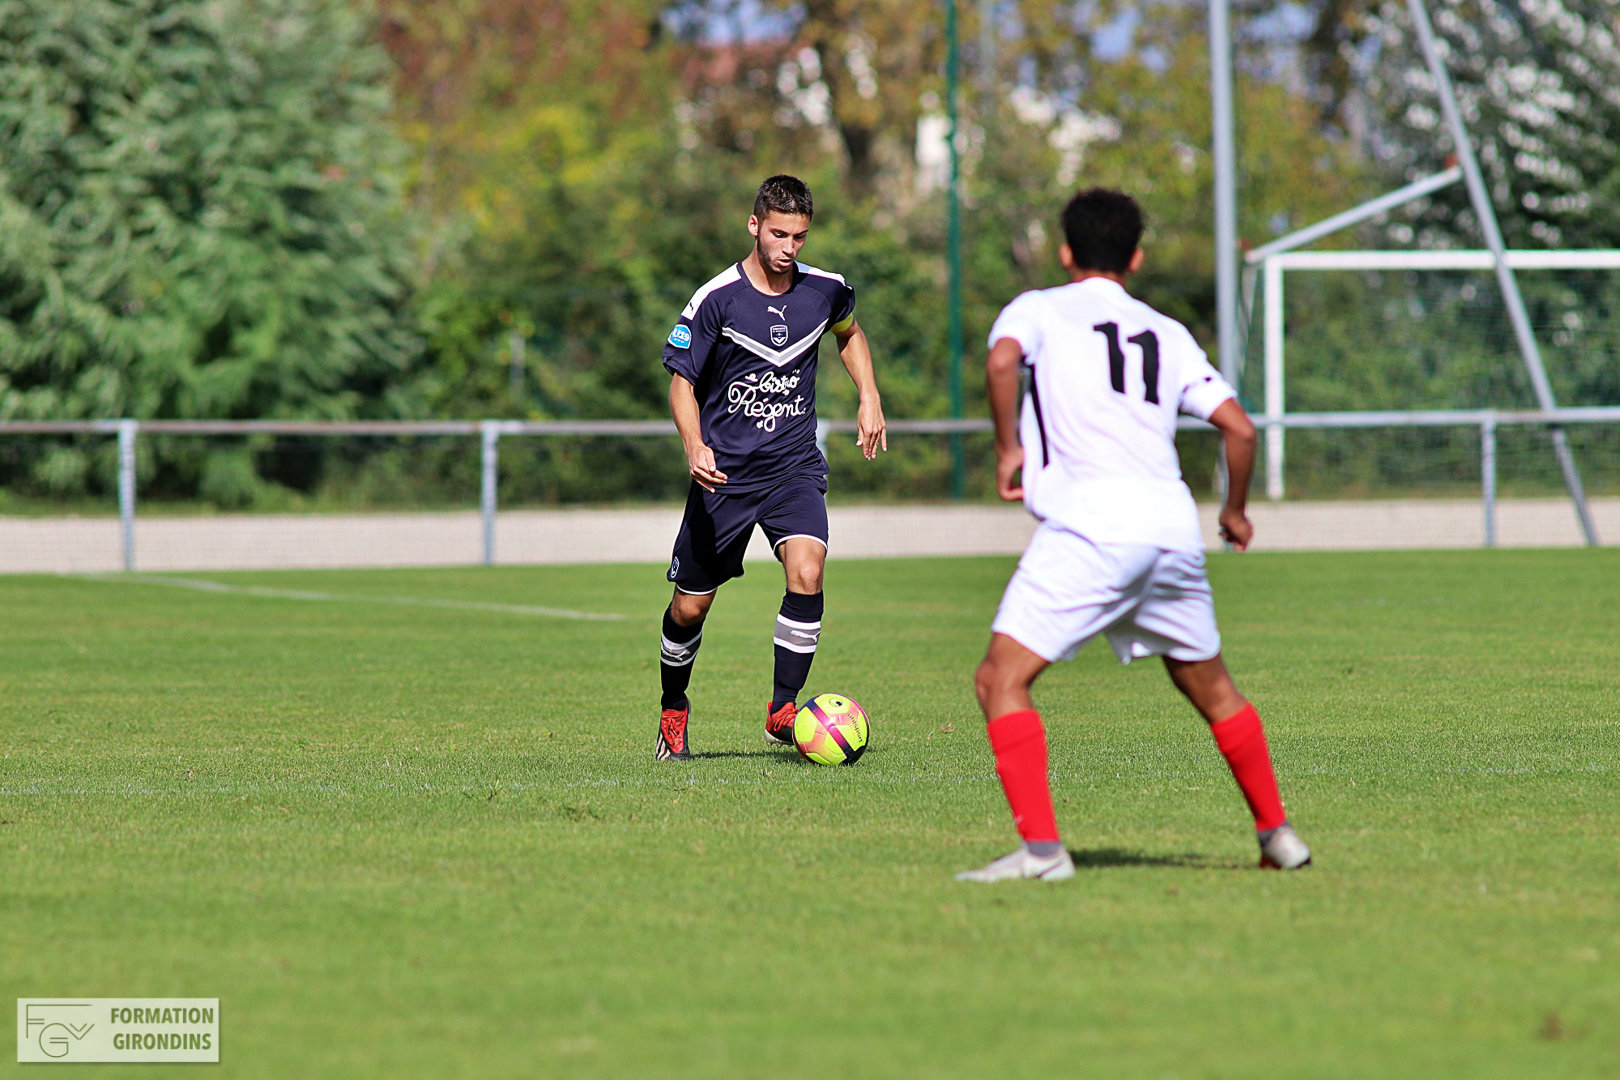 Cfa Girondins : Match amical contre Libourne aujourd'hui - Formation Girondins